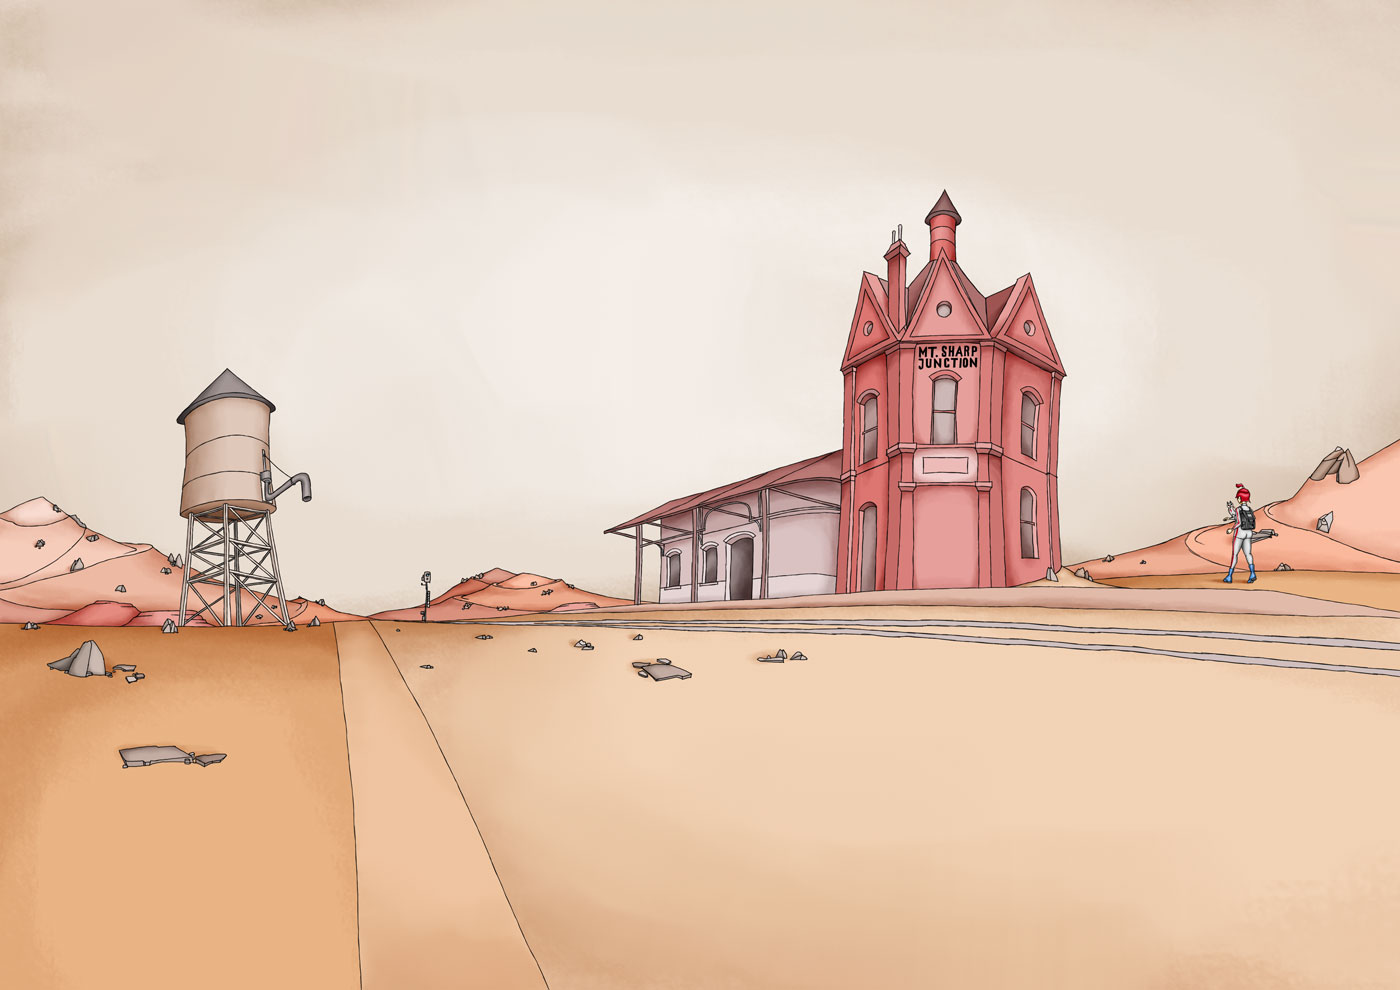 Little Jane Mount Sharp Junction Station Illustration